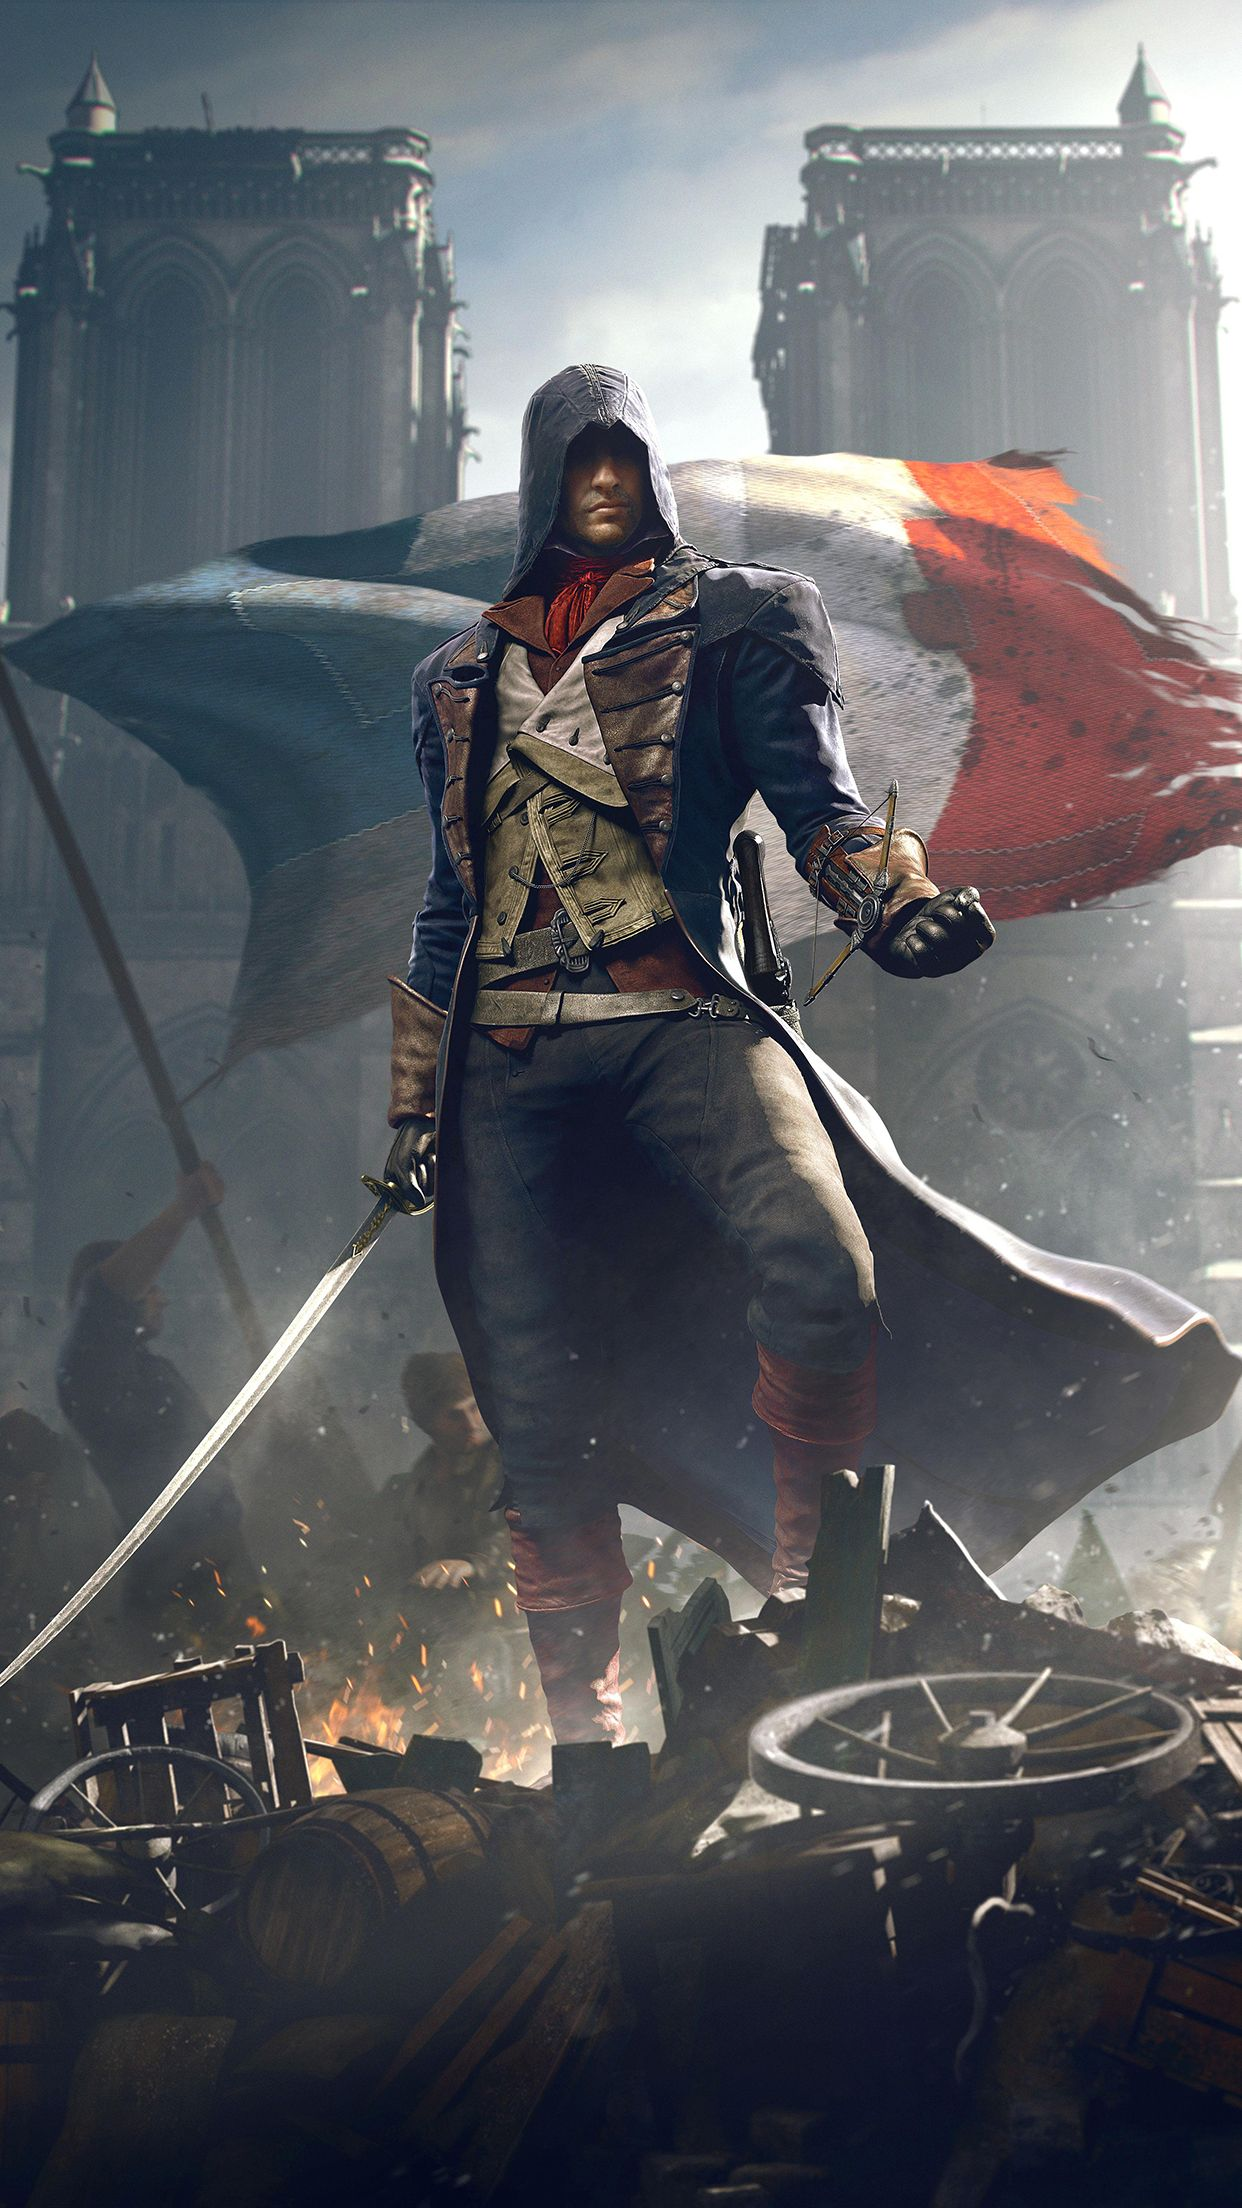 Assassins Creed Phone Wallpaper Wallpapersafari Assassin S Creed Unity Assassins Creed Unity Arno Assassin S Creed Wallpaper